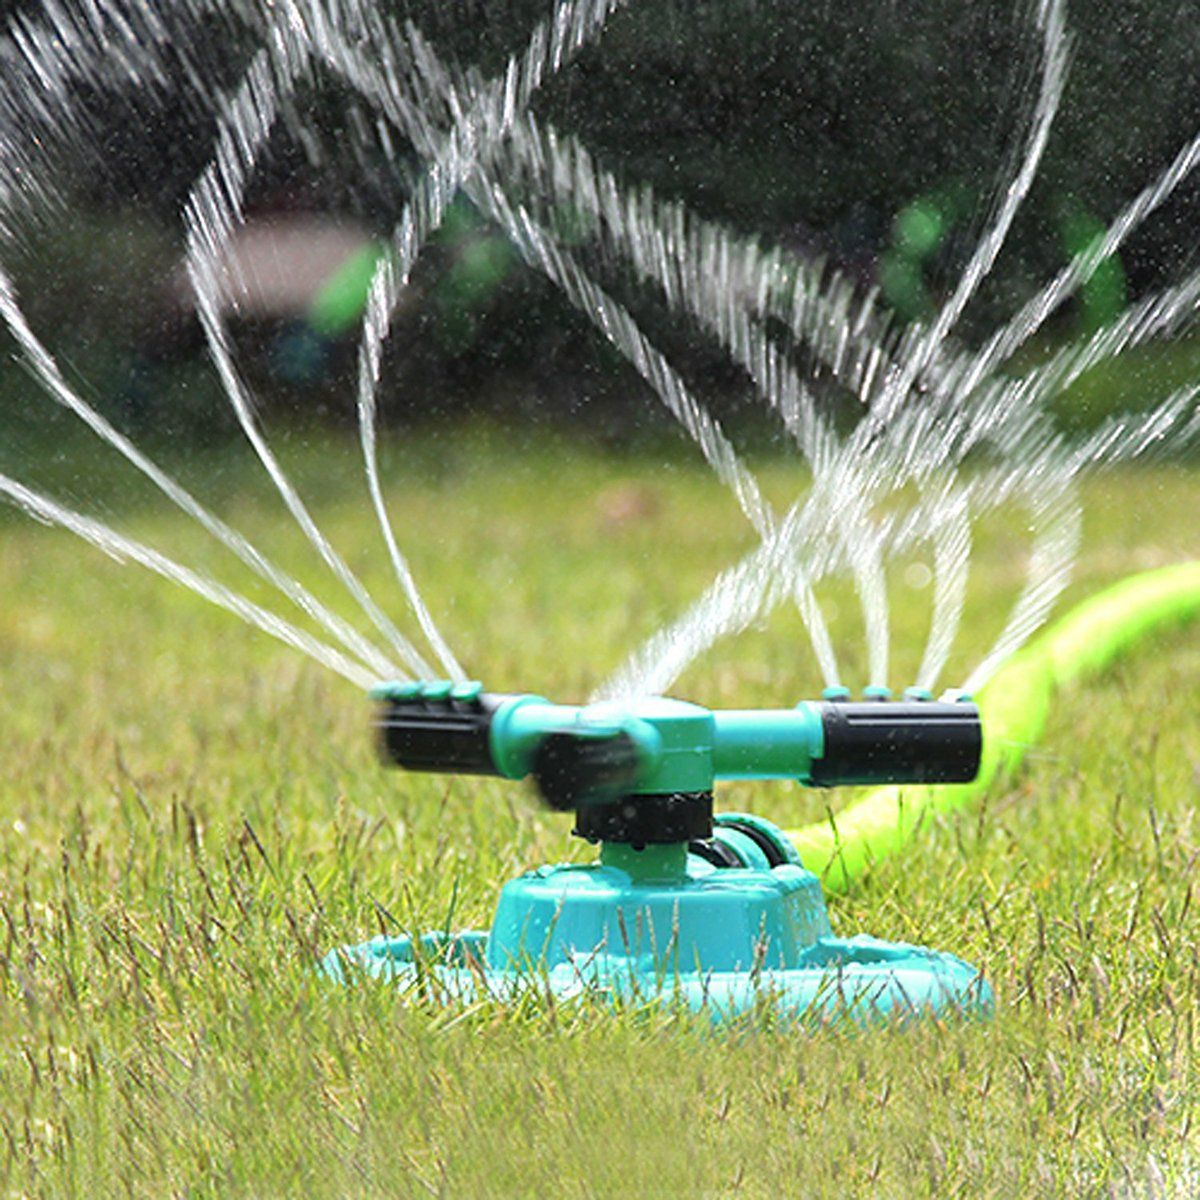 Spraying Can Be Targeted By Adjusting The Water Density Size And Scope Anti Skid Base Plate Manufact Water Sprinkler Best Lawn Sprinkler Garden Sprinklers